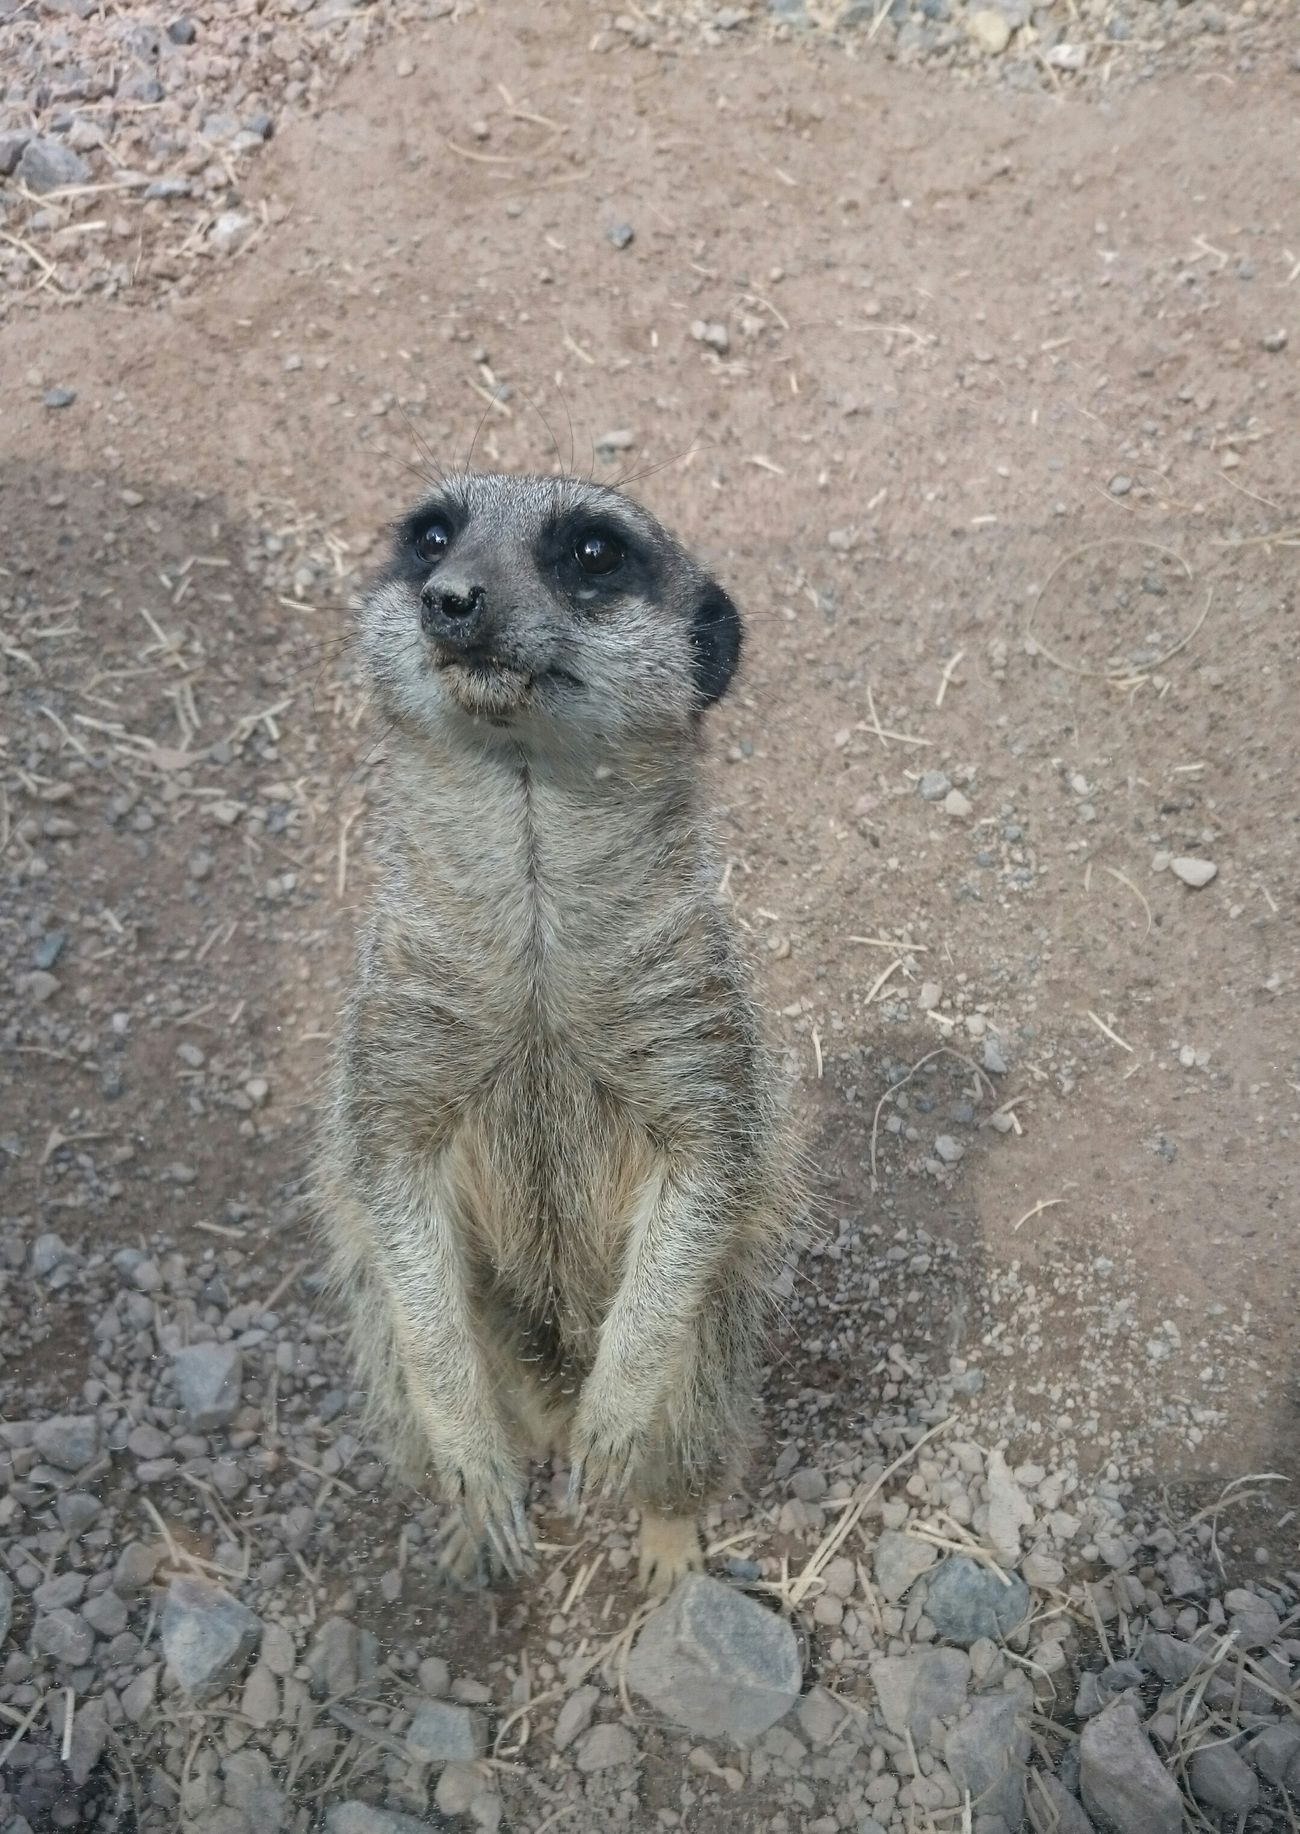 Meerkat Animal Themes Mammal No People Animal Wildlife Outdoors Nature Animal One Animal Sand Animals In The Wild High Angle View Day